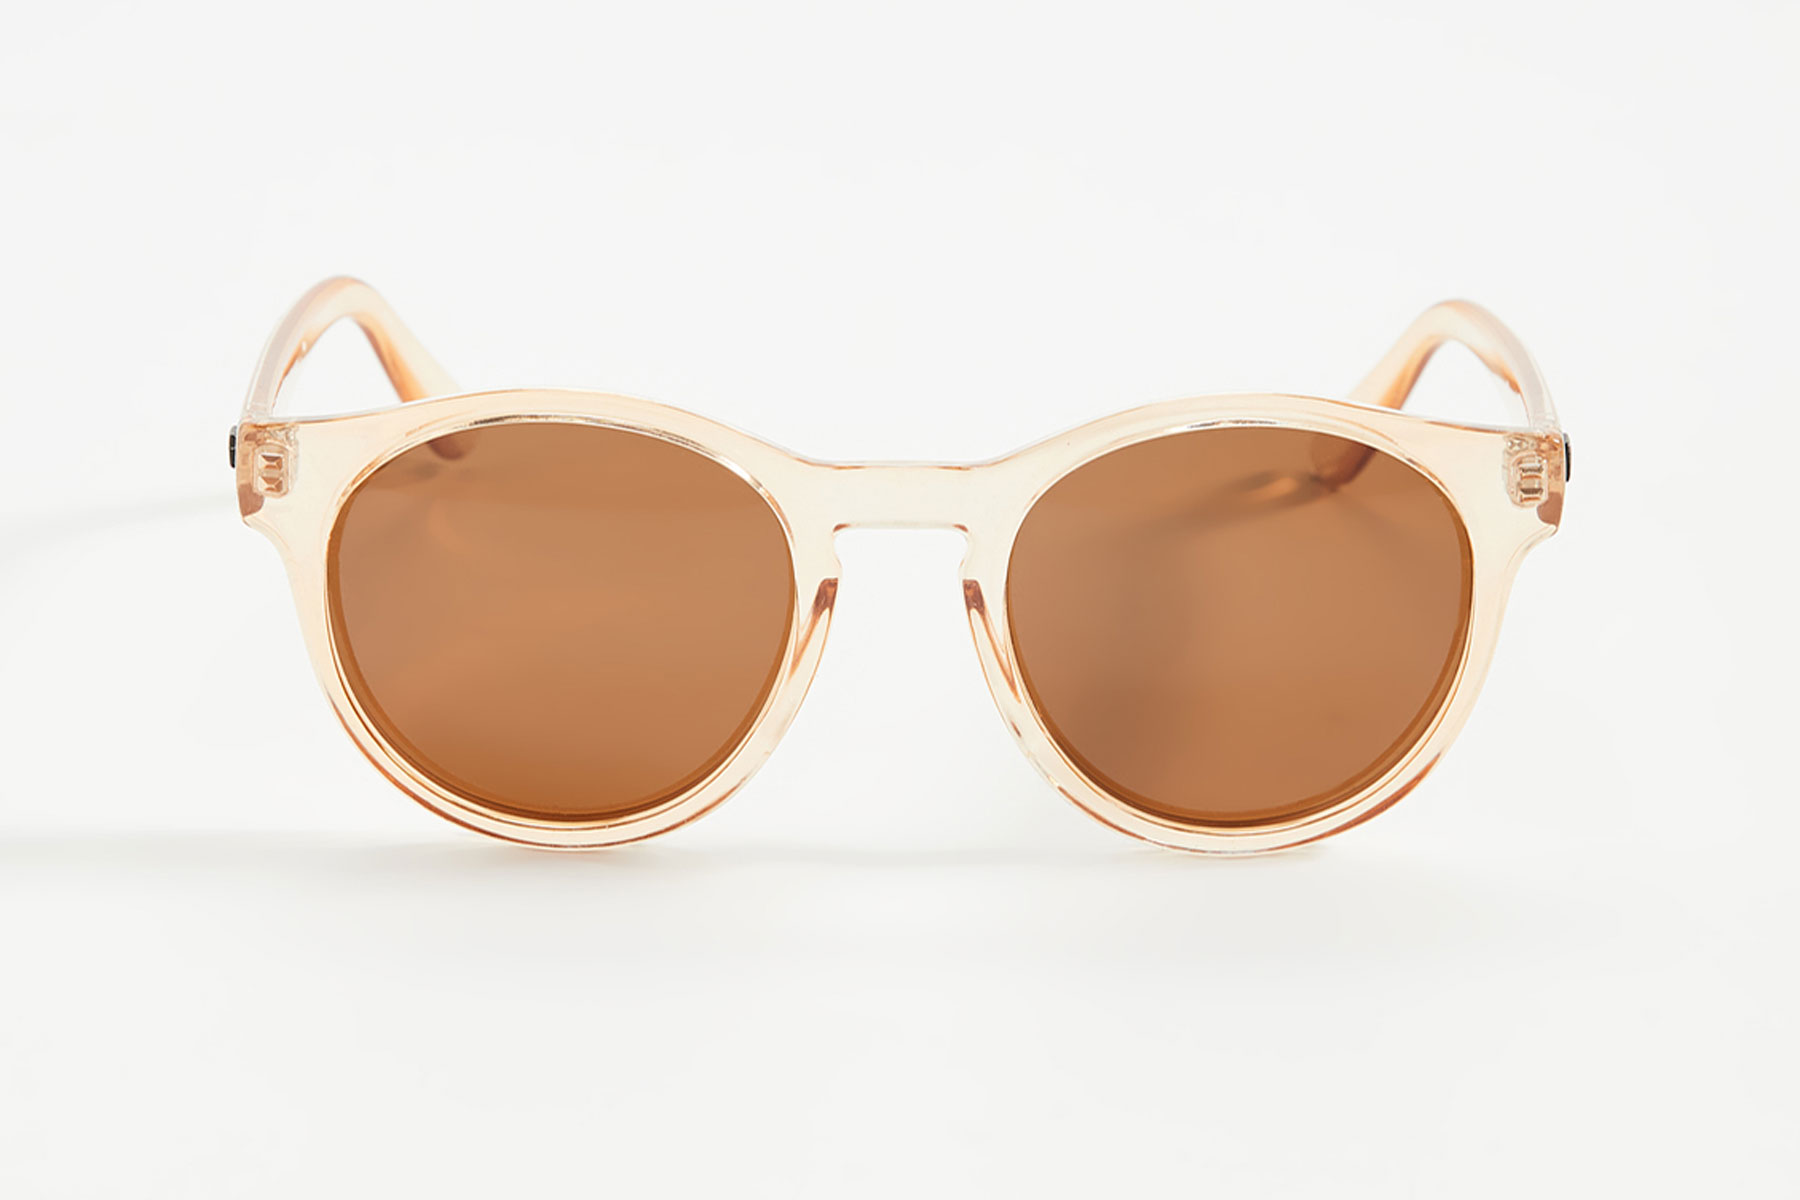 Clear/yellow tinted round sunglasses